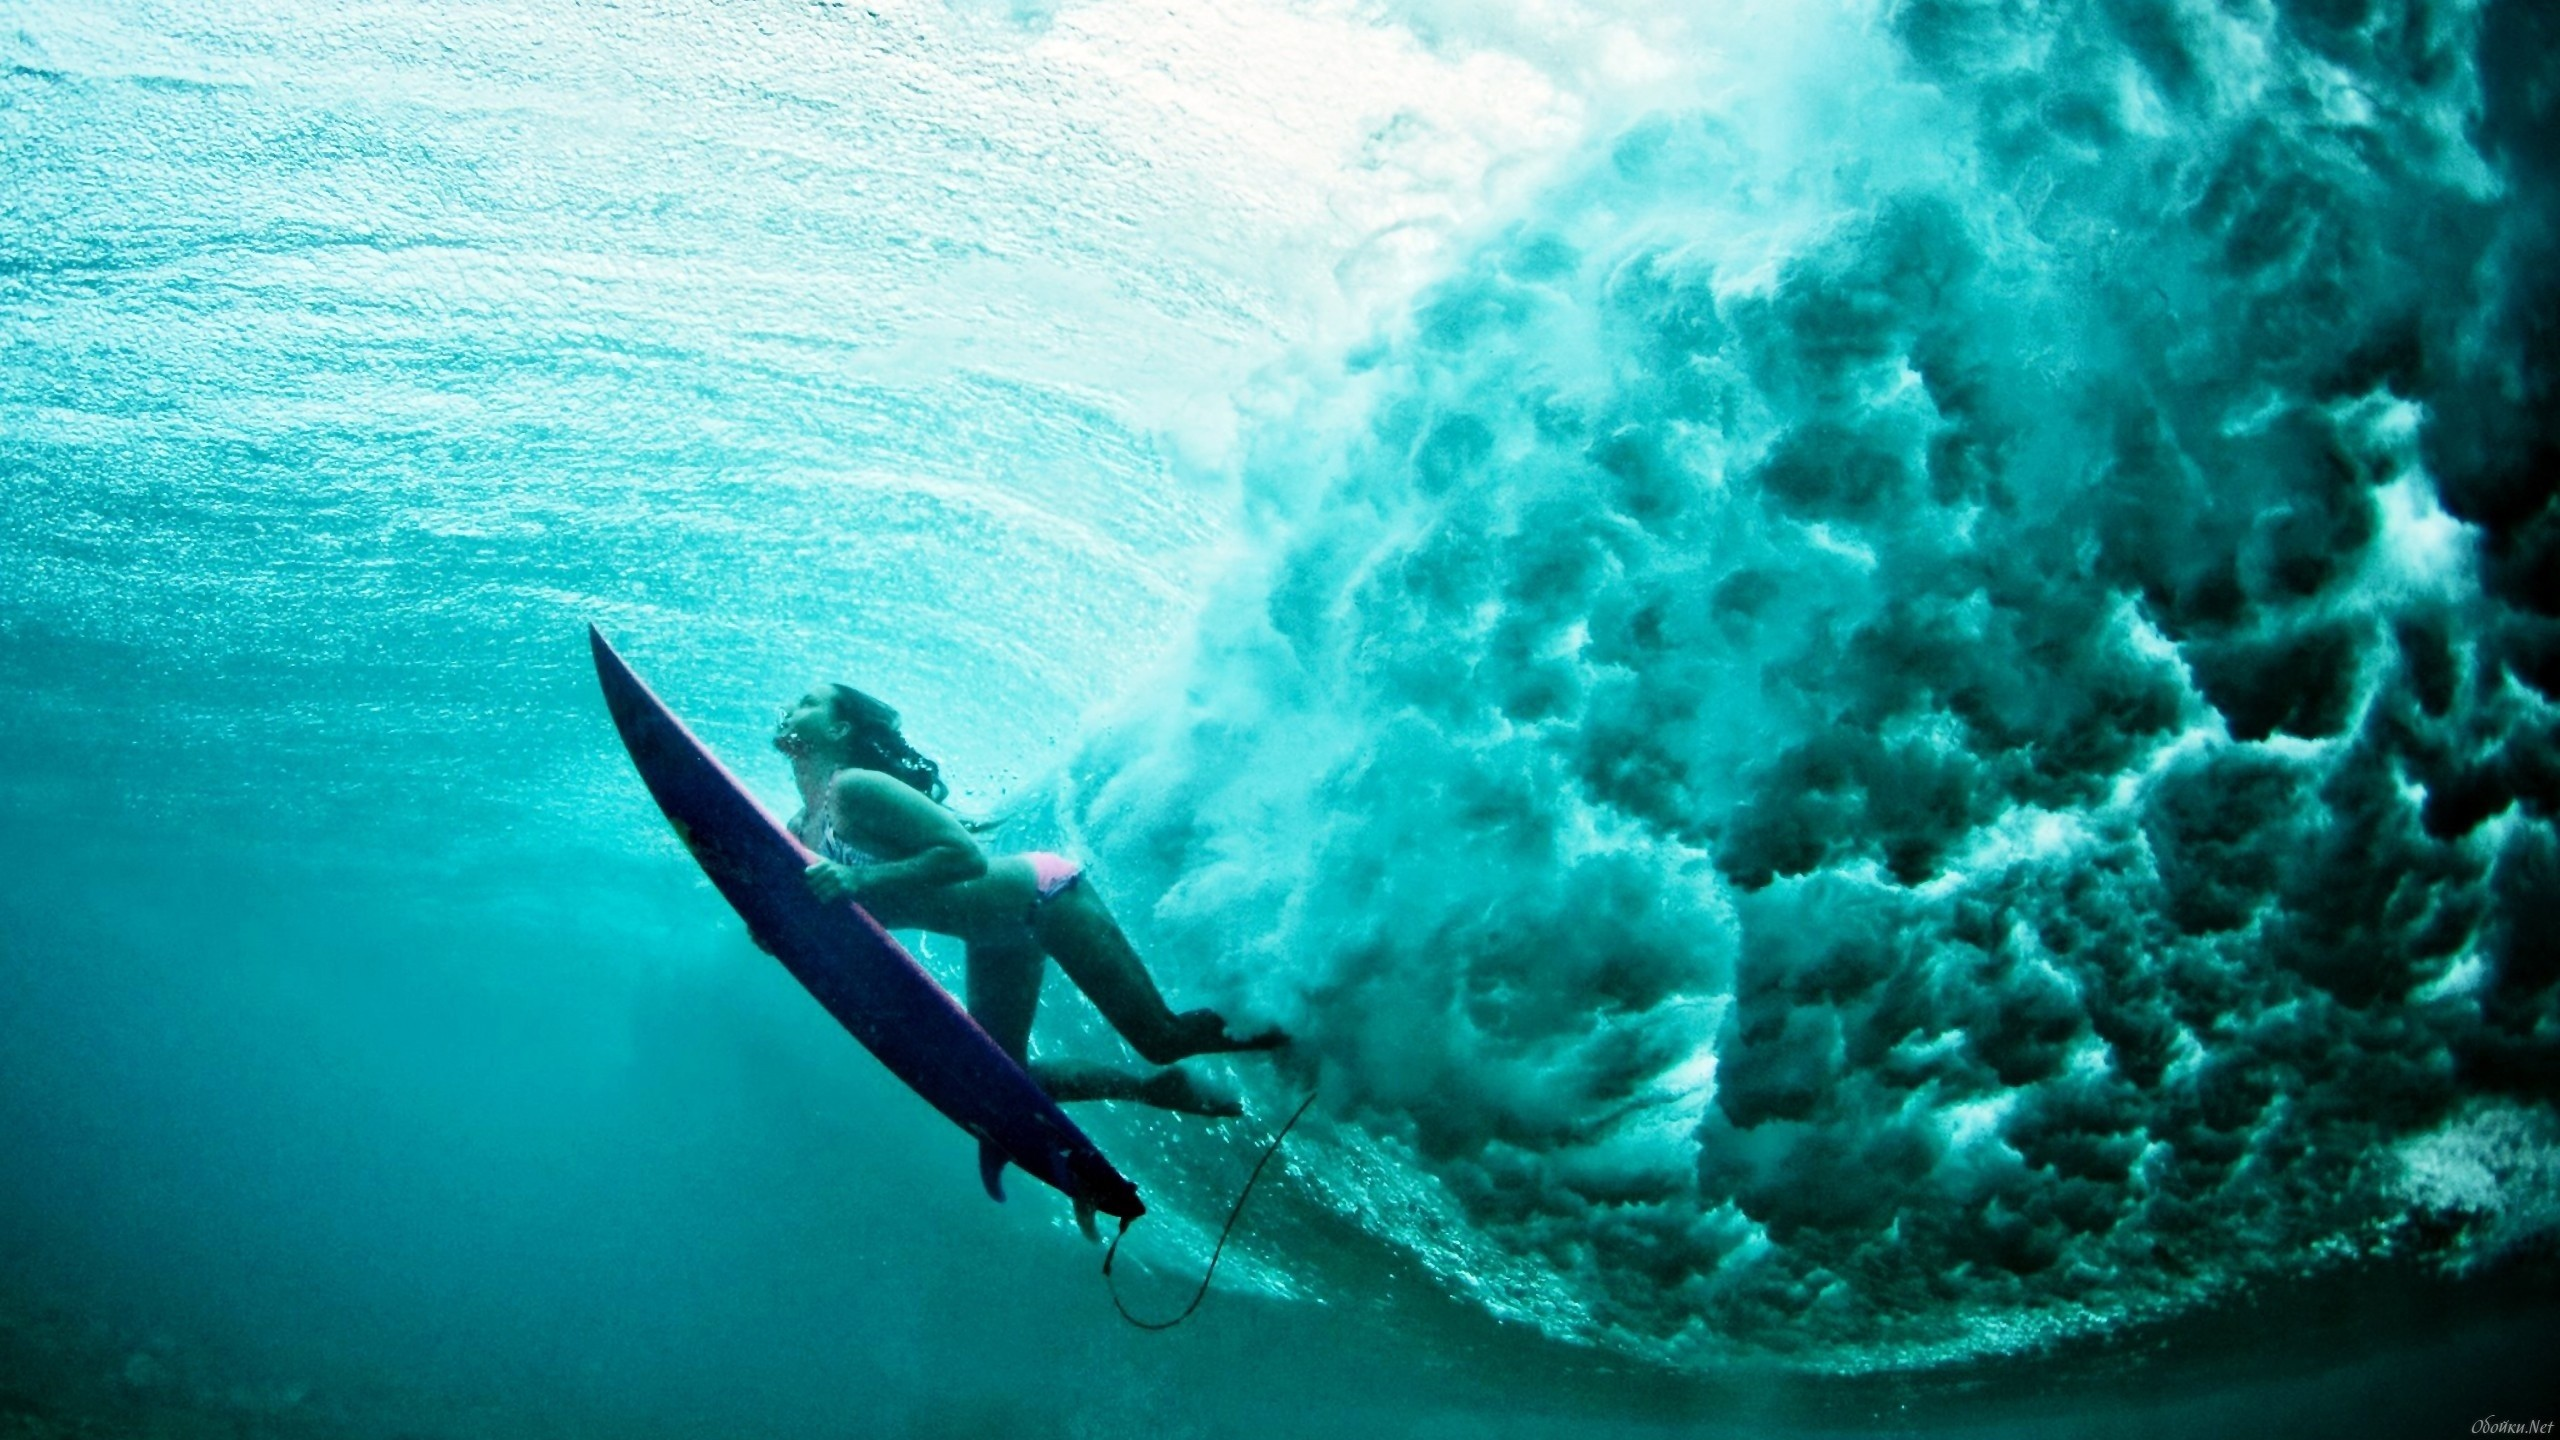 … wave surfing wallpaper 16 wallpapers hd wallpapers …